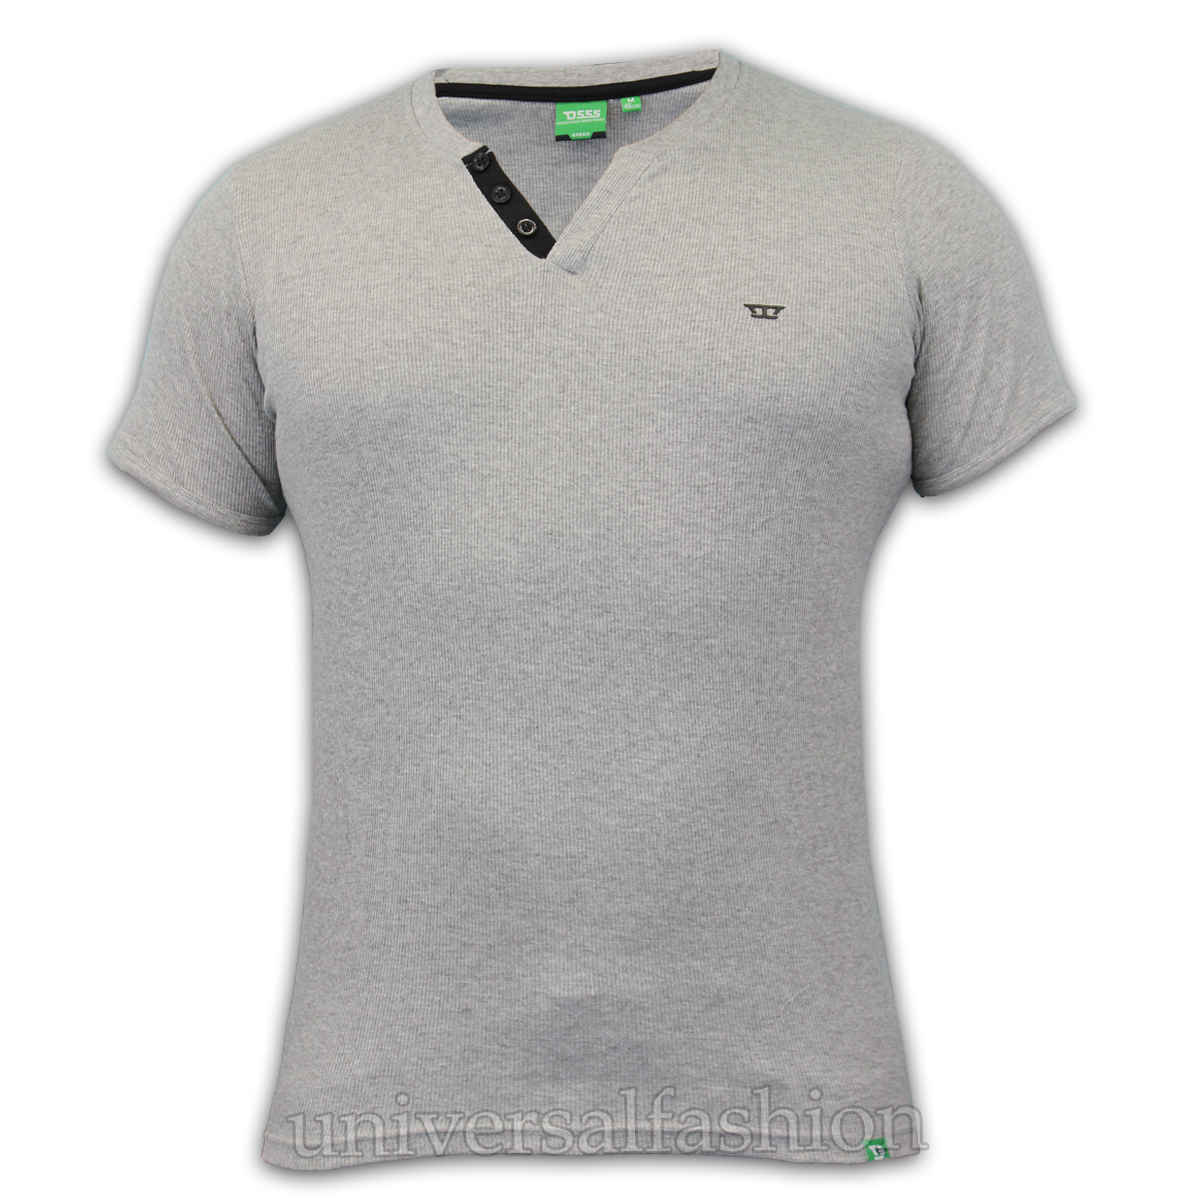 Mens ribbed jersey t shirts by d555 ebay for Mens ribbed t shirts